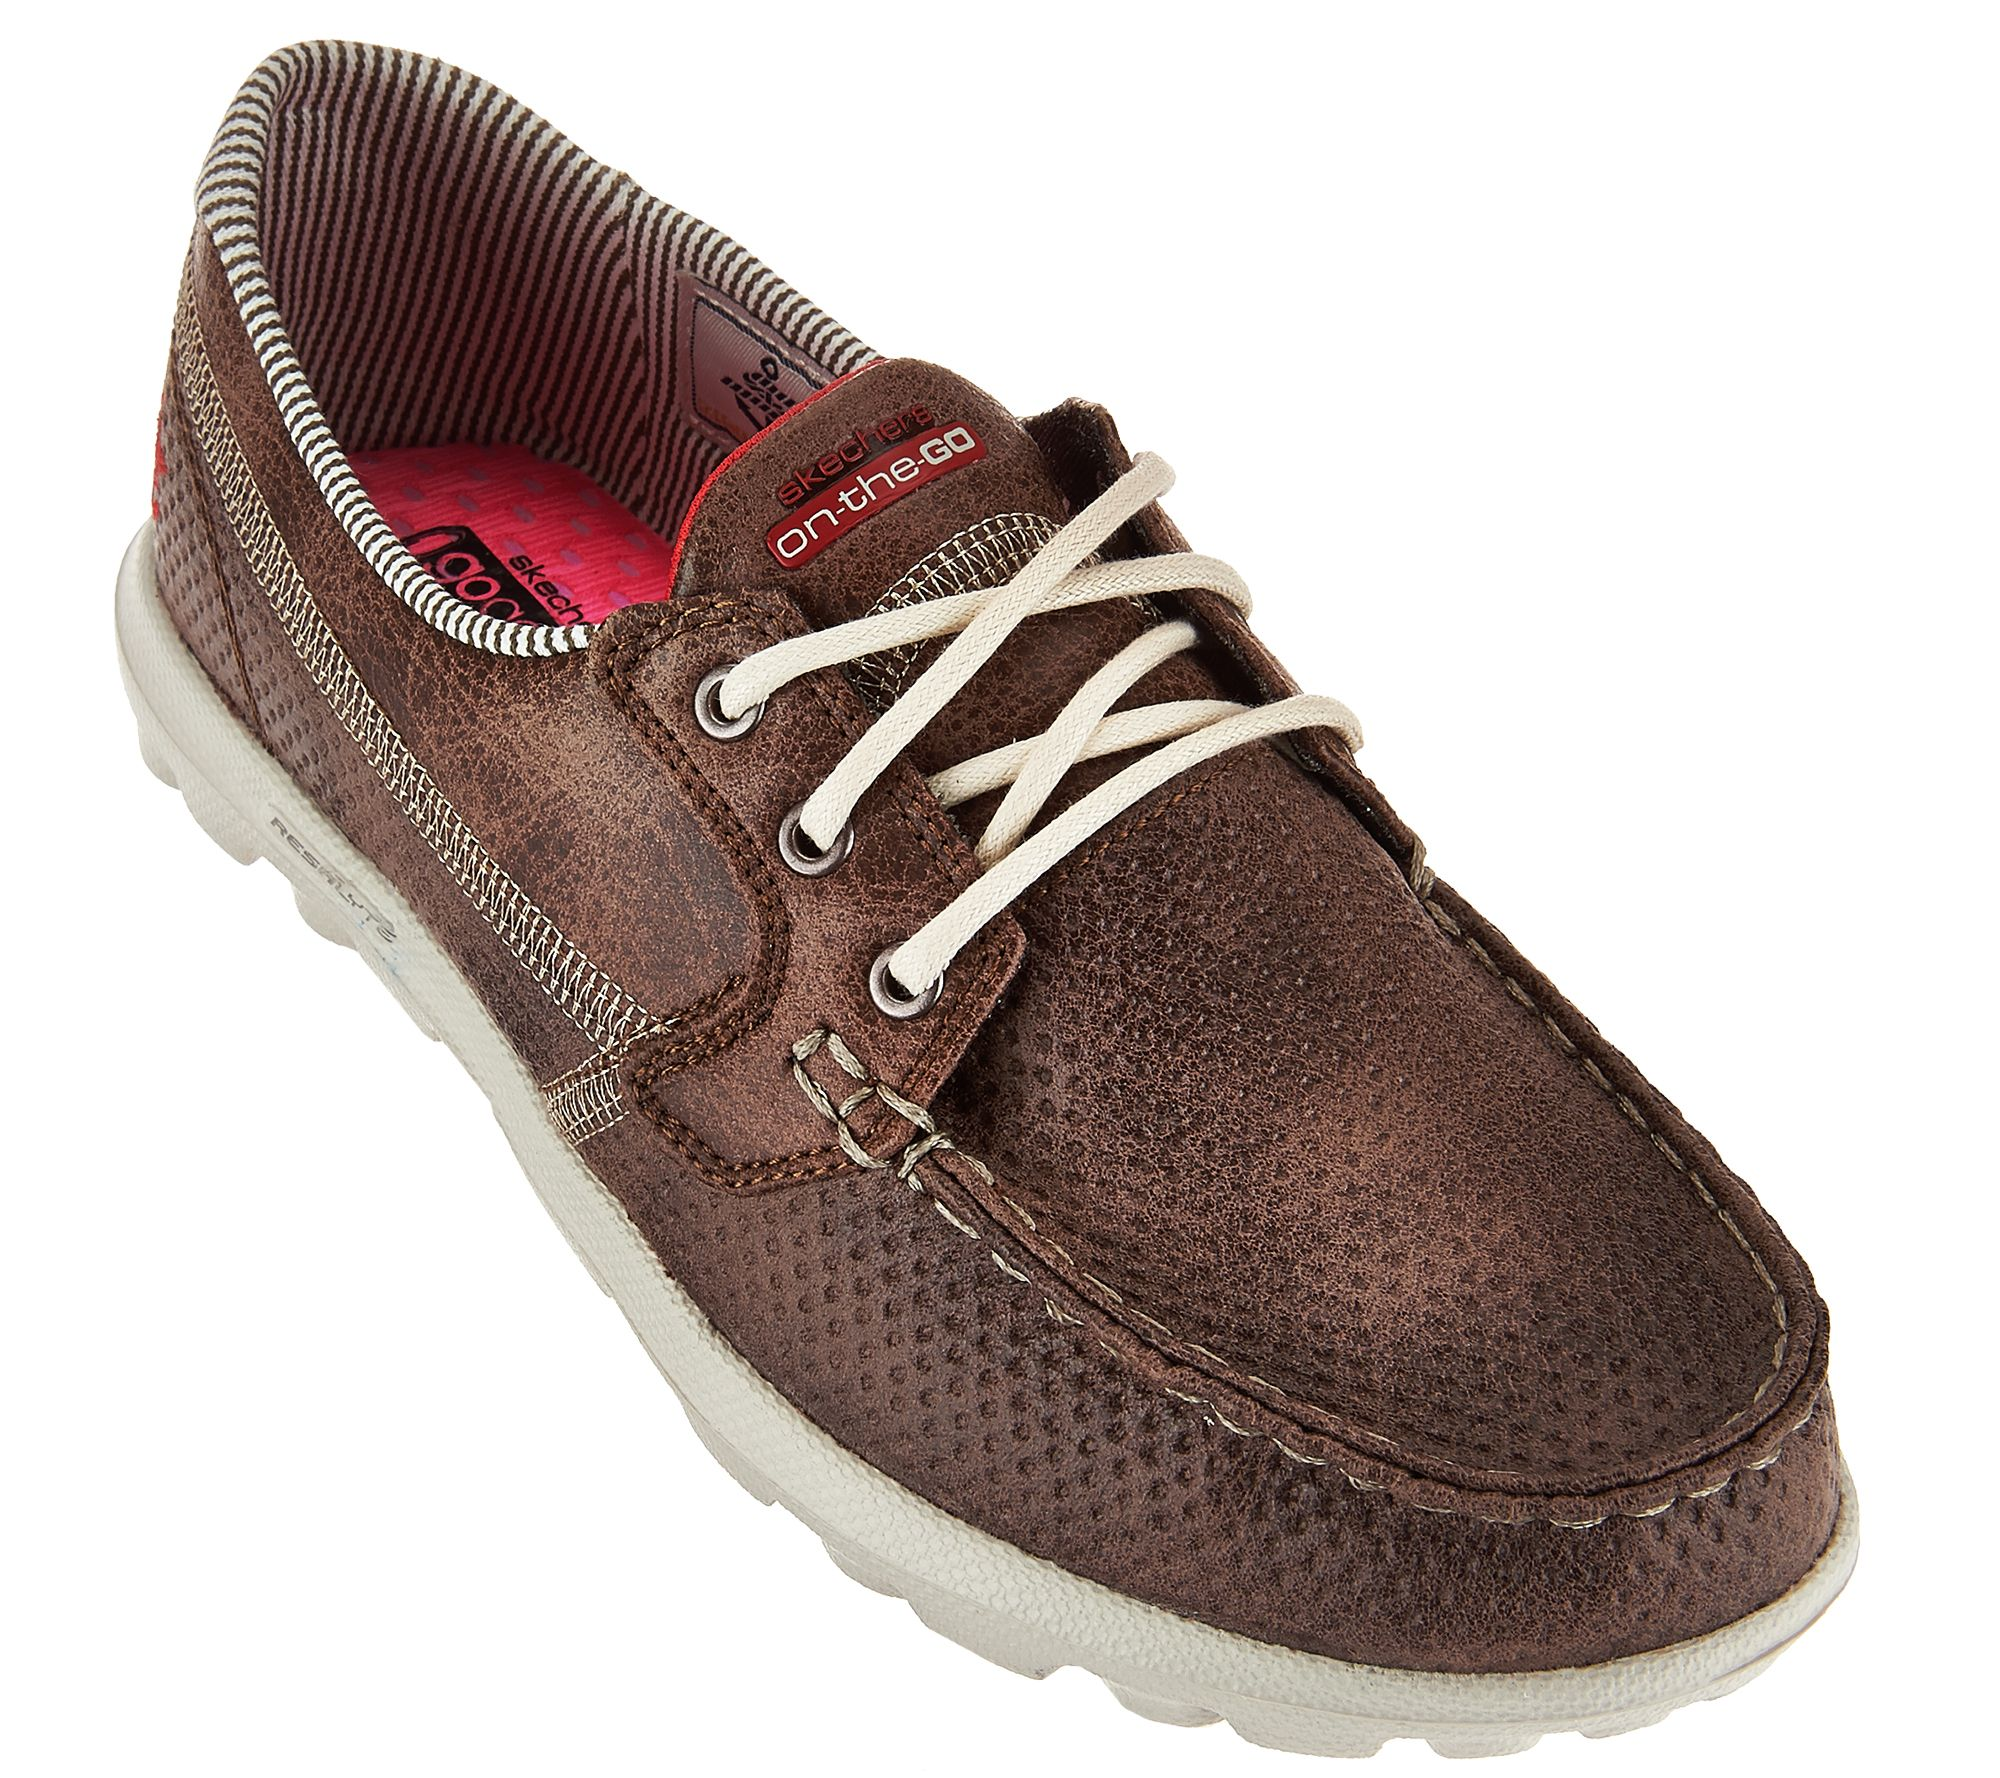 skechers on-the-go embossed lace-up boat shoes